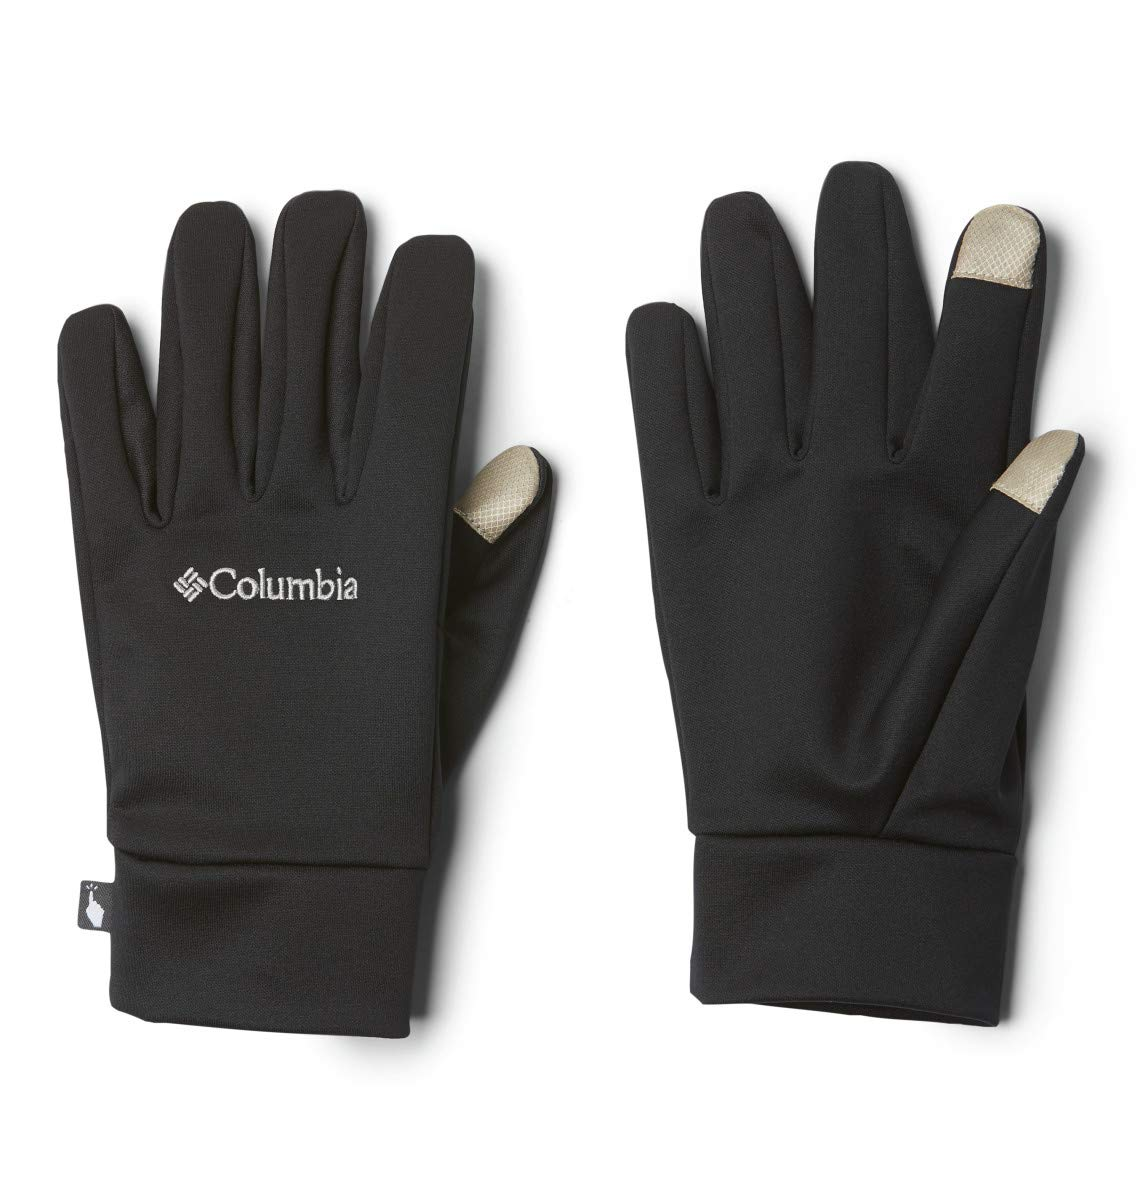 Columbia Unisex Omni-Heat Touch Glove Liner, Thermal Reflective Warmth